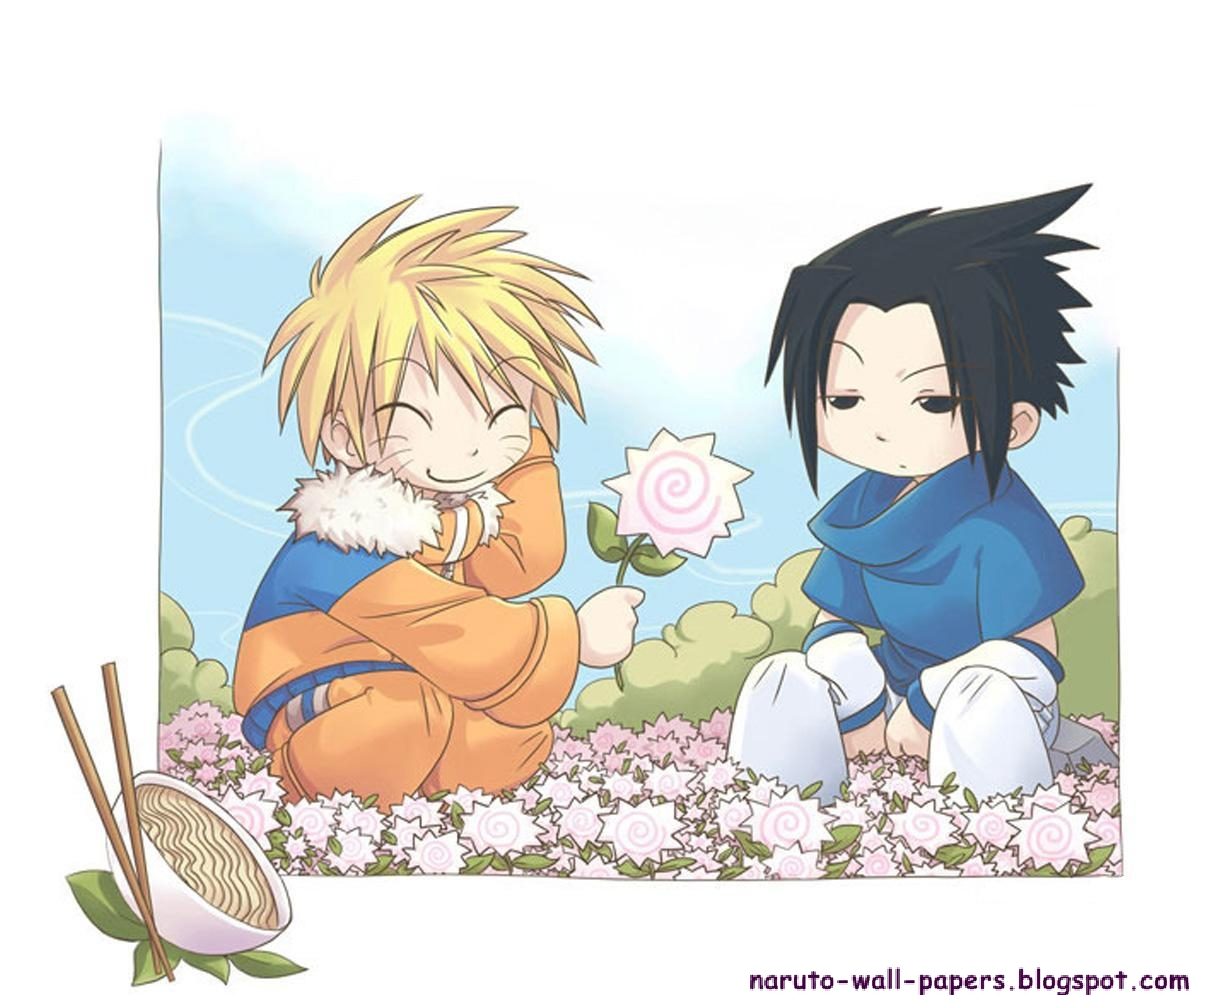 Fantastic Wallpaper Naruto Cute - Cute+Team+Kakashi+Chibi+Naruto+Pix+%25285%2529  Graphic_29049.jpg